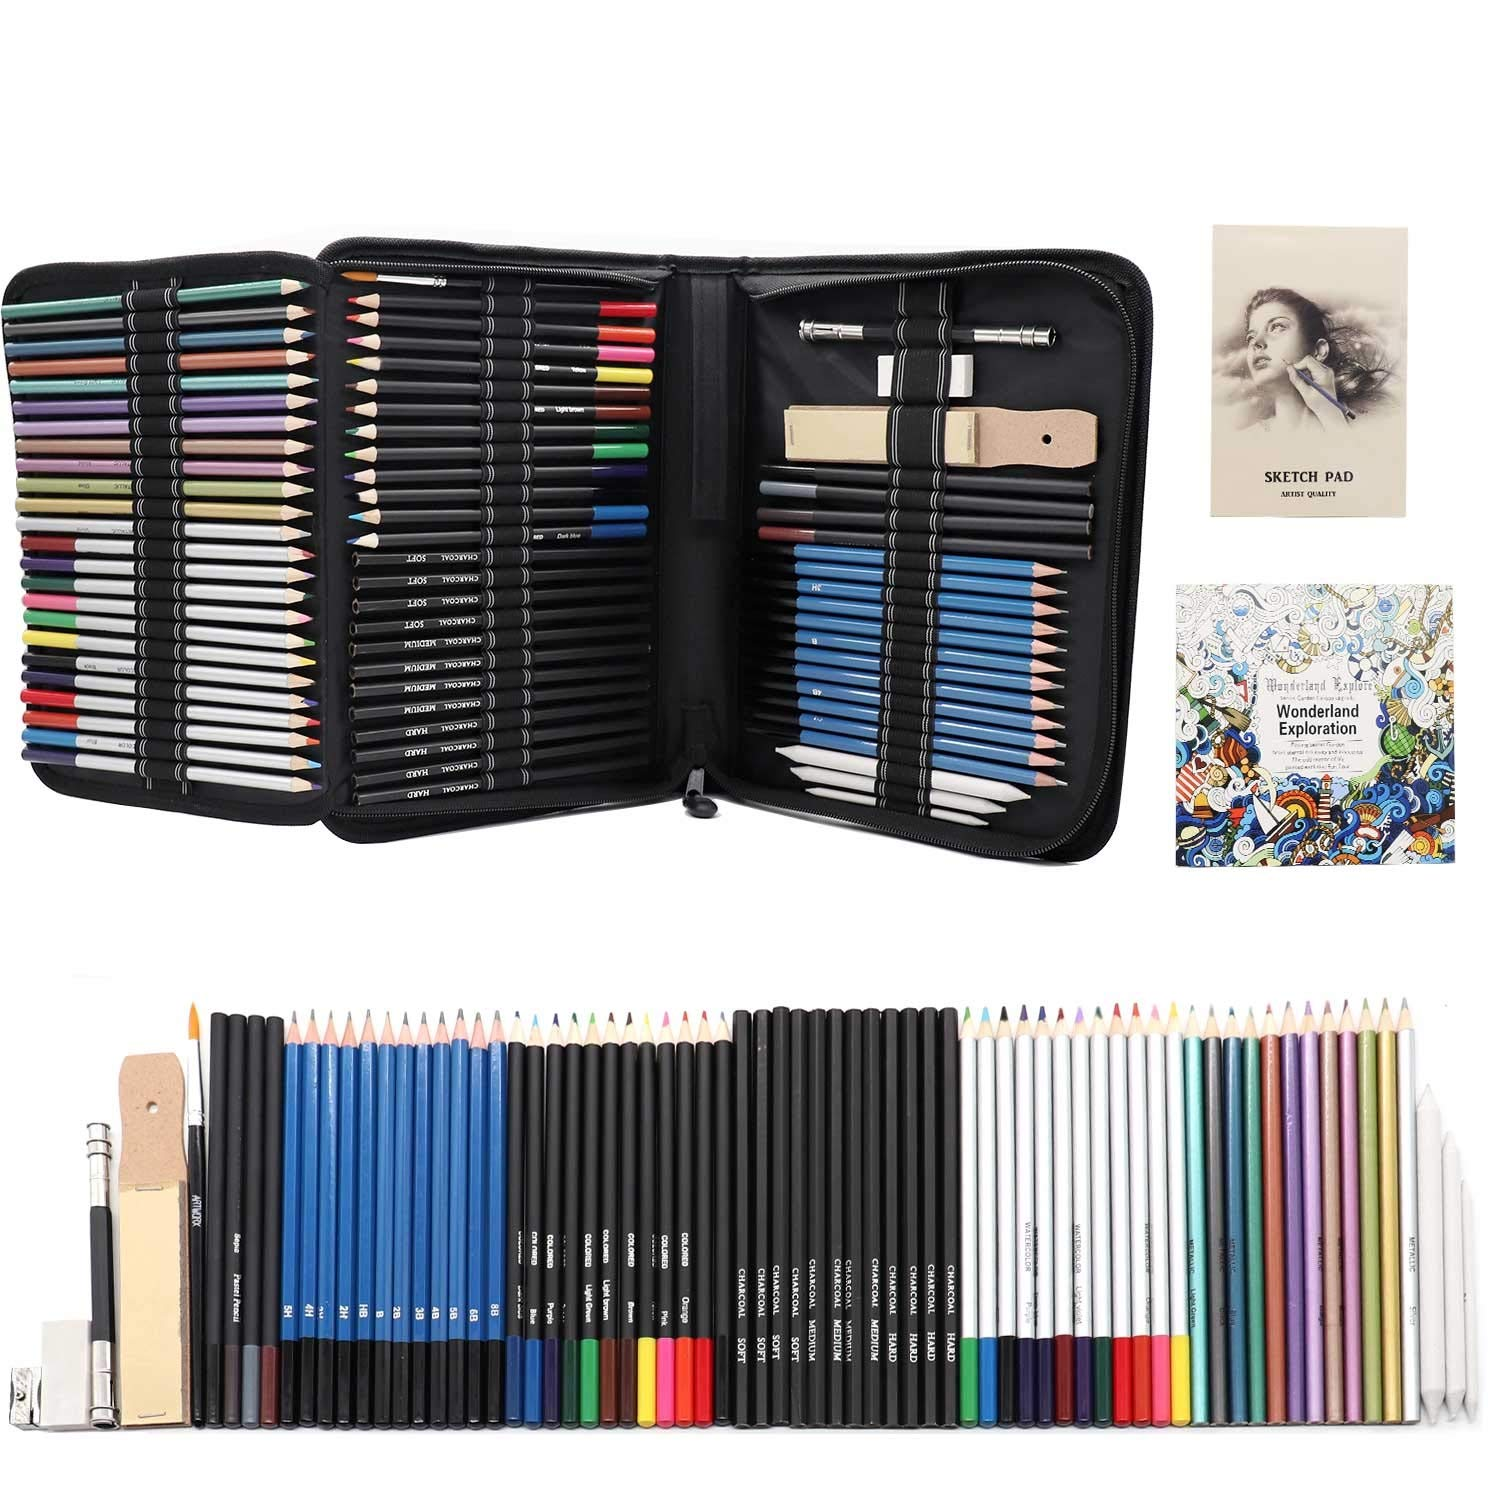 Jacriah 74-Piece Arts Supplies Drawing and Sketch Set.Professional Artist Drawing Kit Includes Charcoal Pencils   Graphite Pencils  Colored Pencils   Sketch pad   Zippered Carry Case.